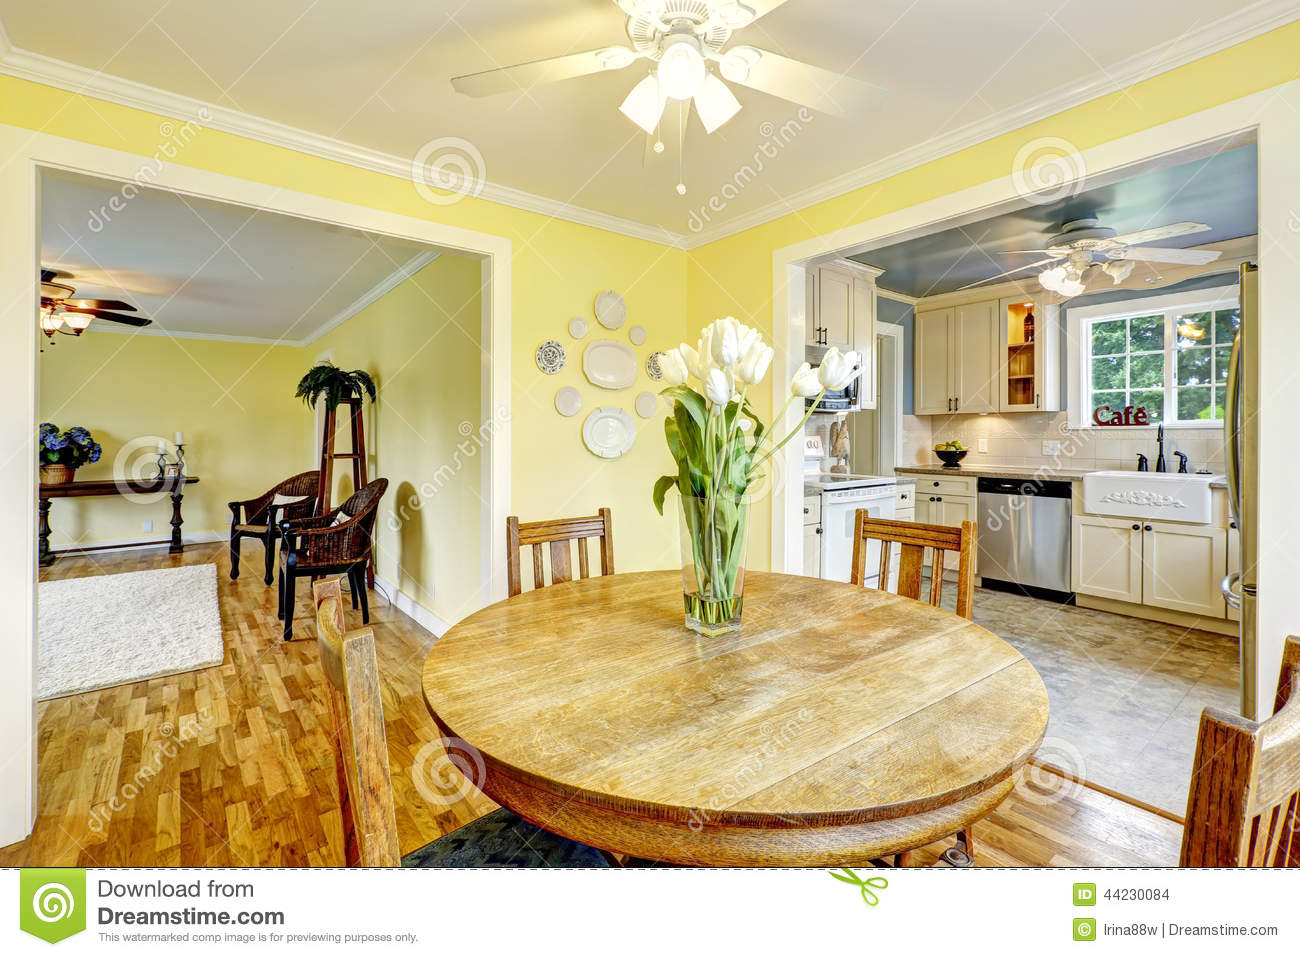 Bright yellow dining room stock photo. Image of project ...